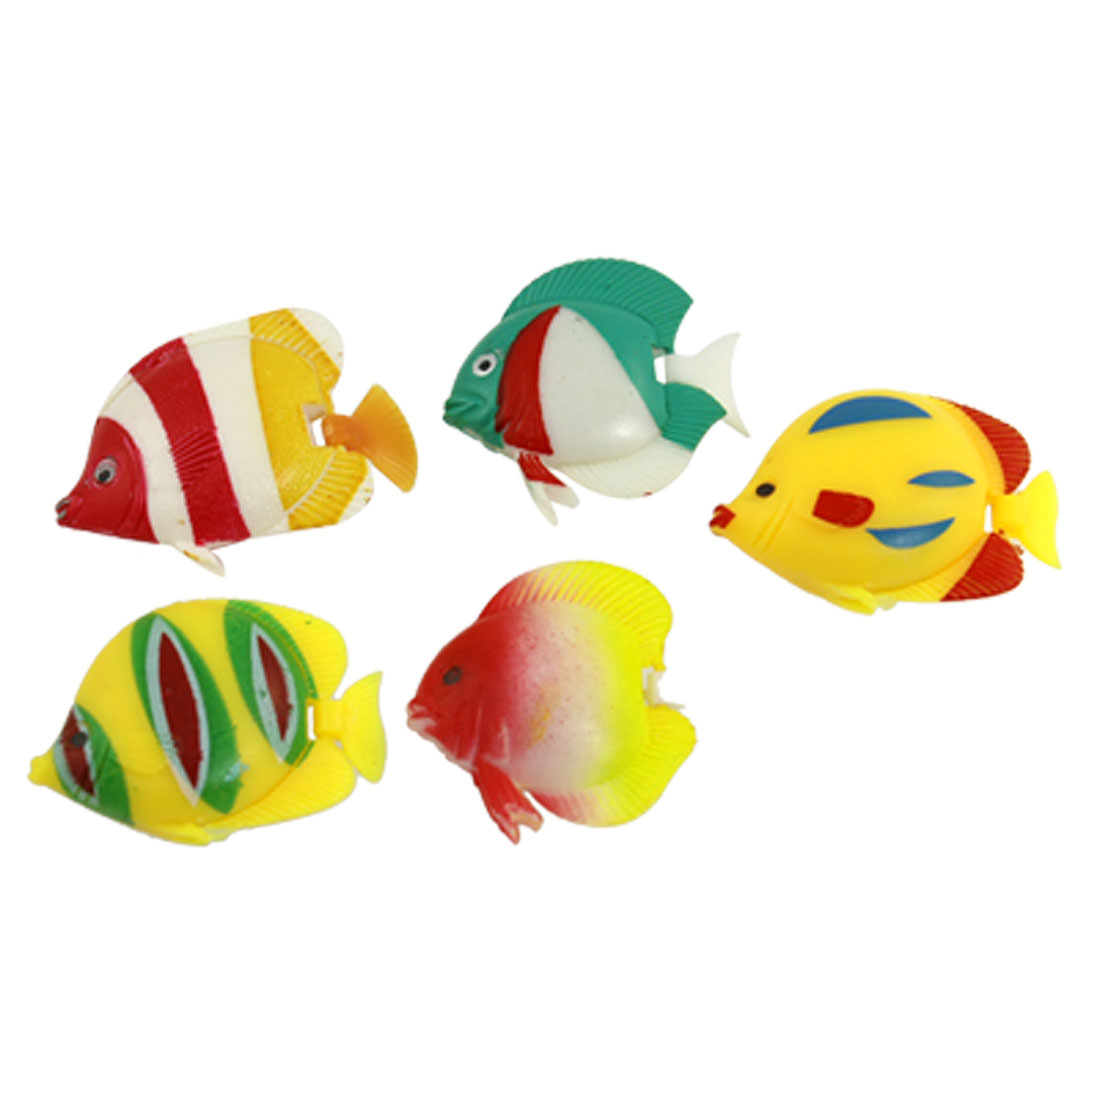 5 x Plastic Manmade Swimming Tropical Fish for Aquarium